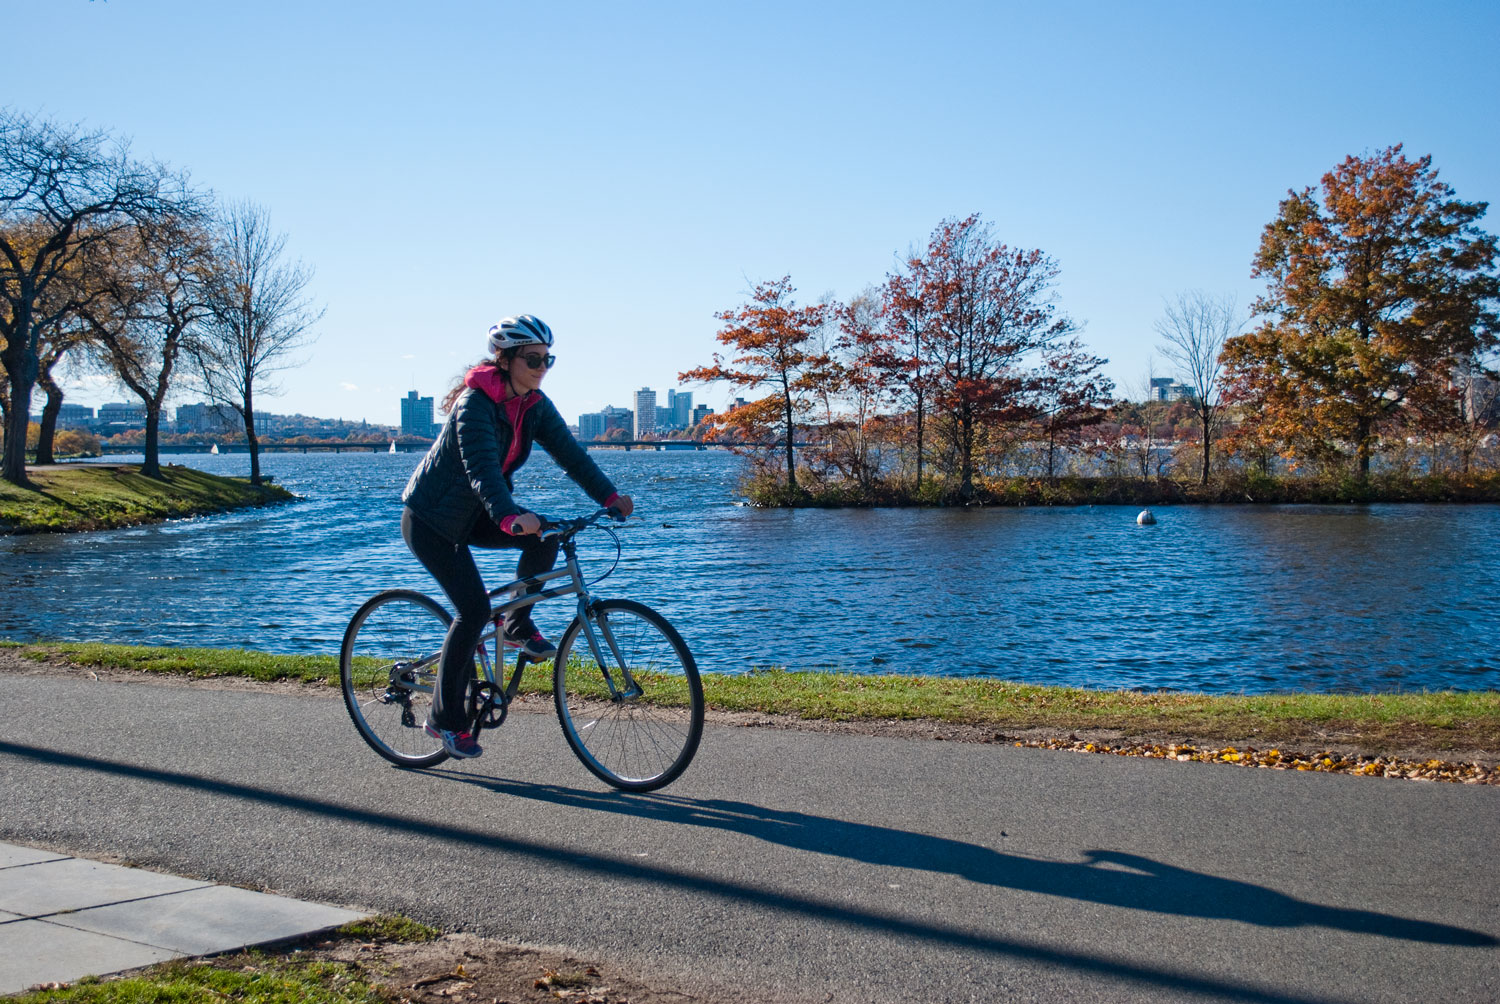 Crosstown-woman-riding-by-river-2